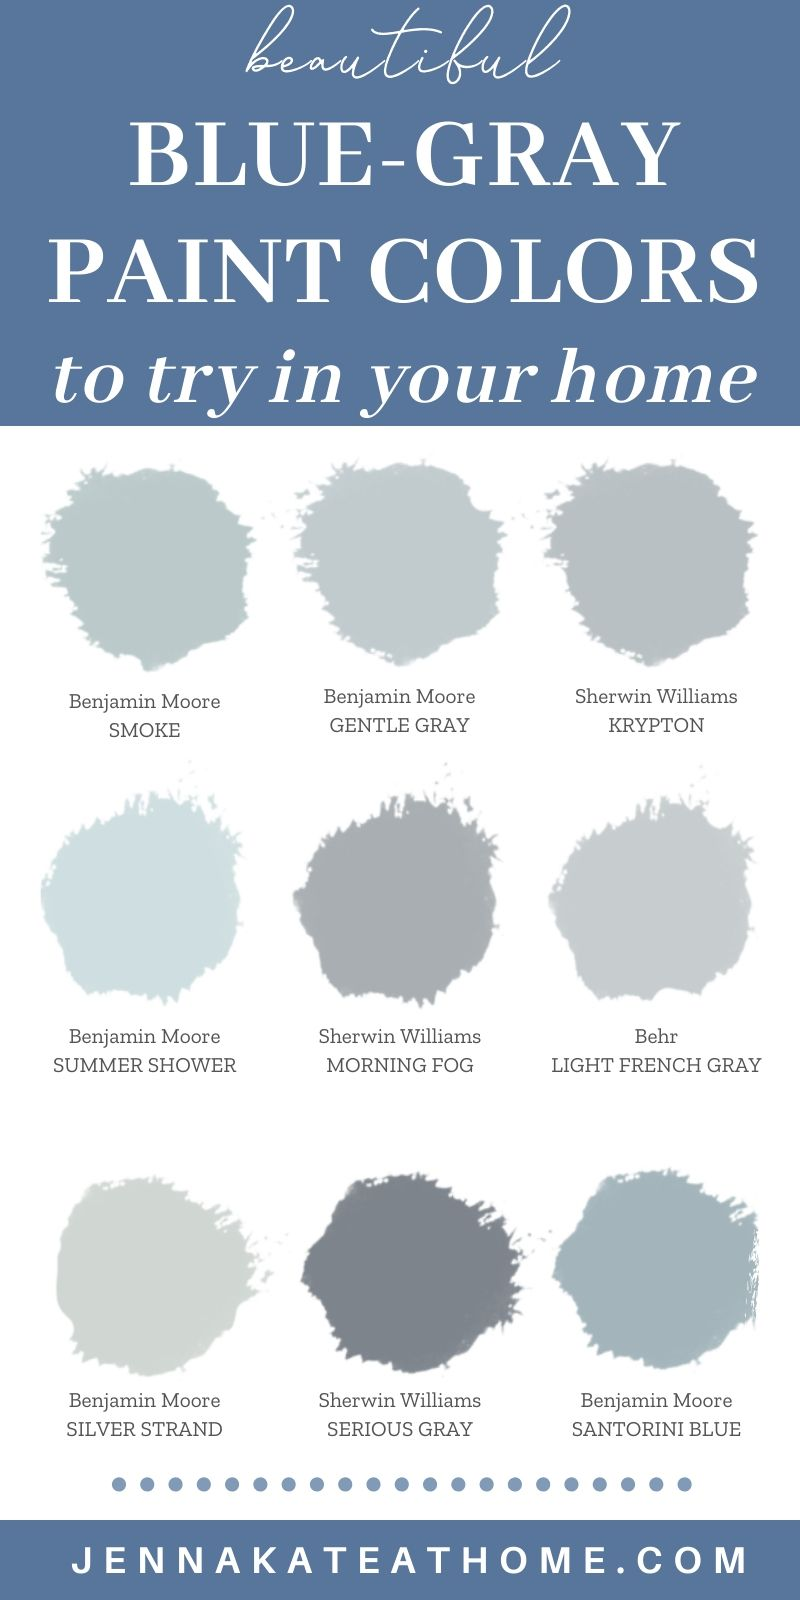 The Best Blue Gray Paint Colors In 2020 Blue Gray Paint Colors Blue Gray Paint Grey Paint Colors